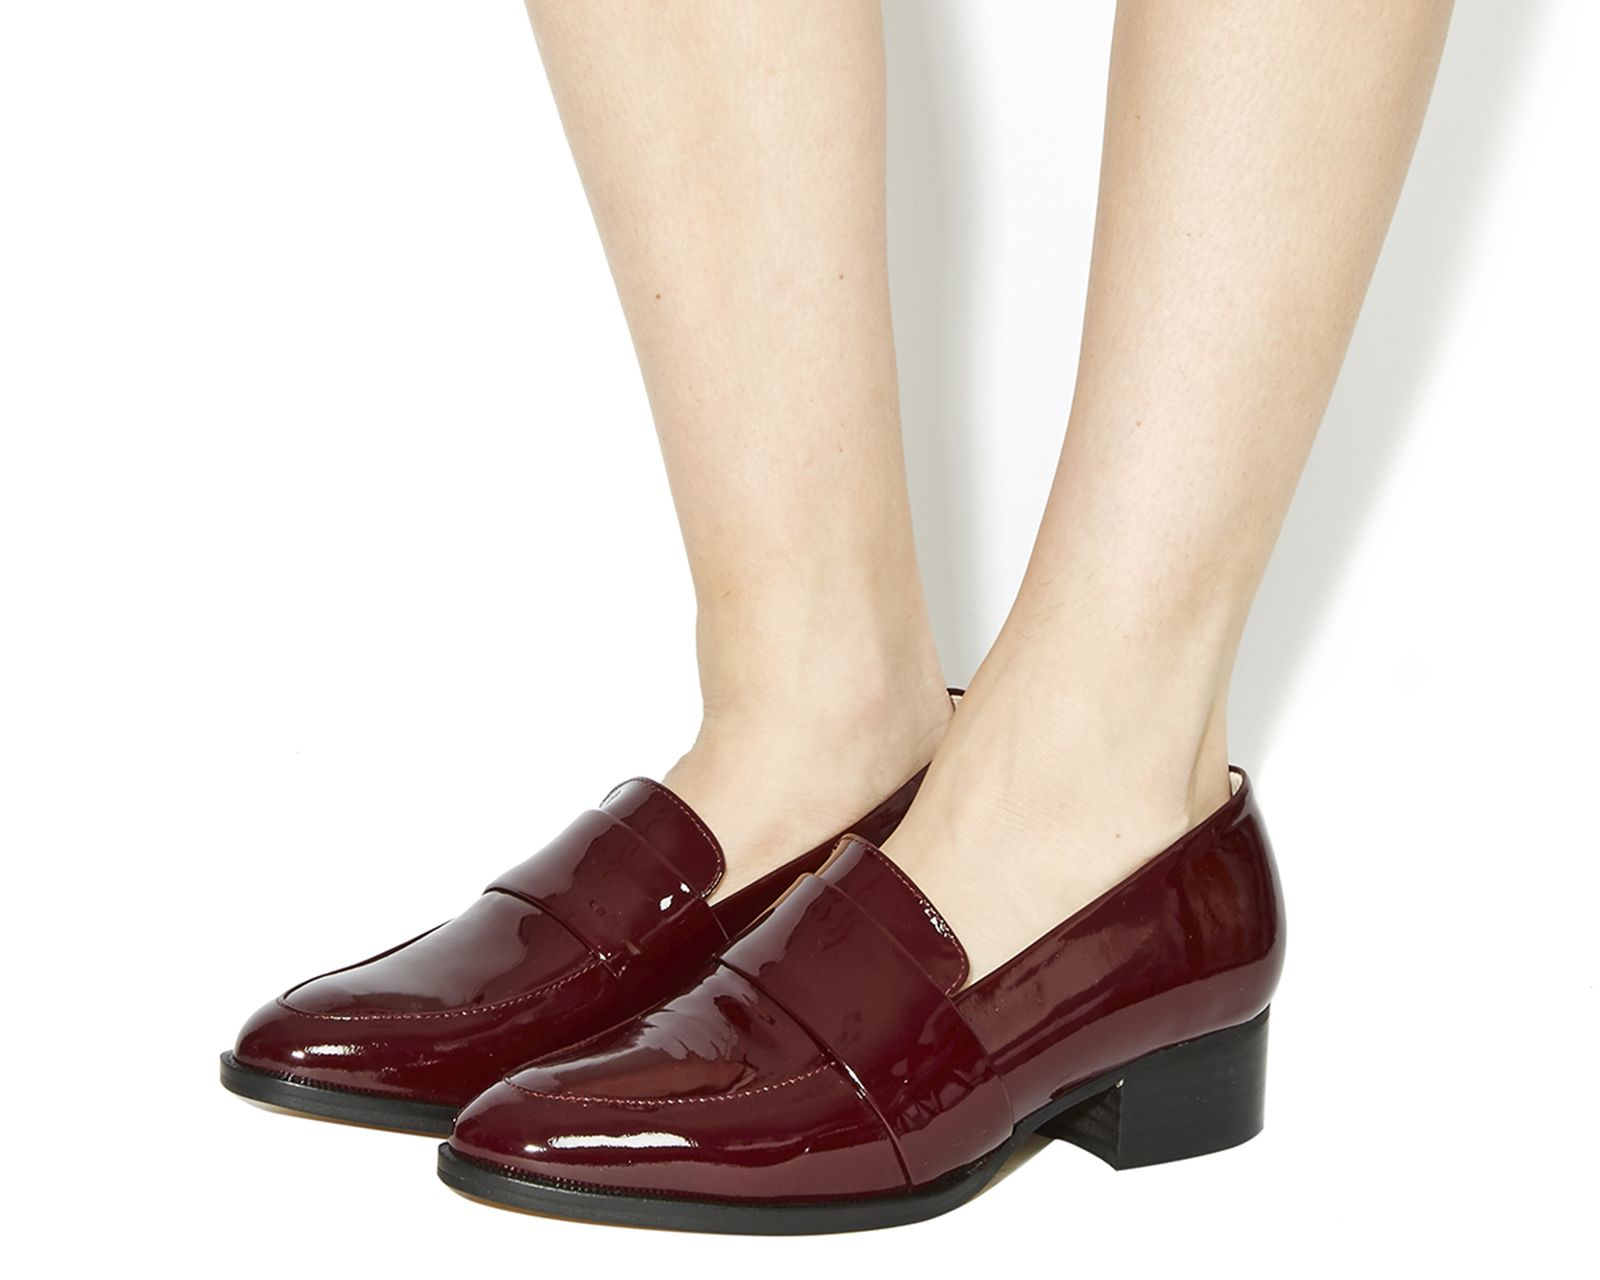 Office Qimble Block Heel Clean Loafers Burgundy Patent Leather - Mid Heels